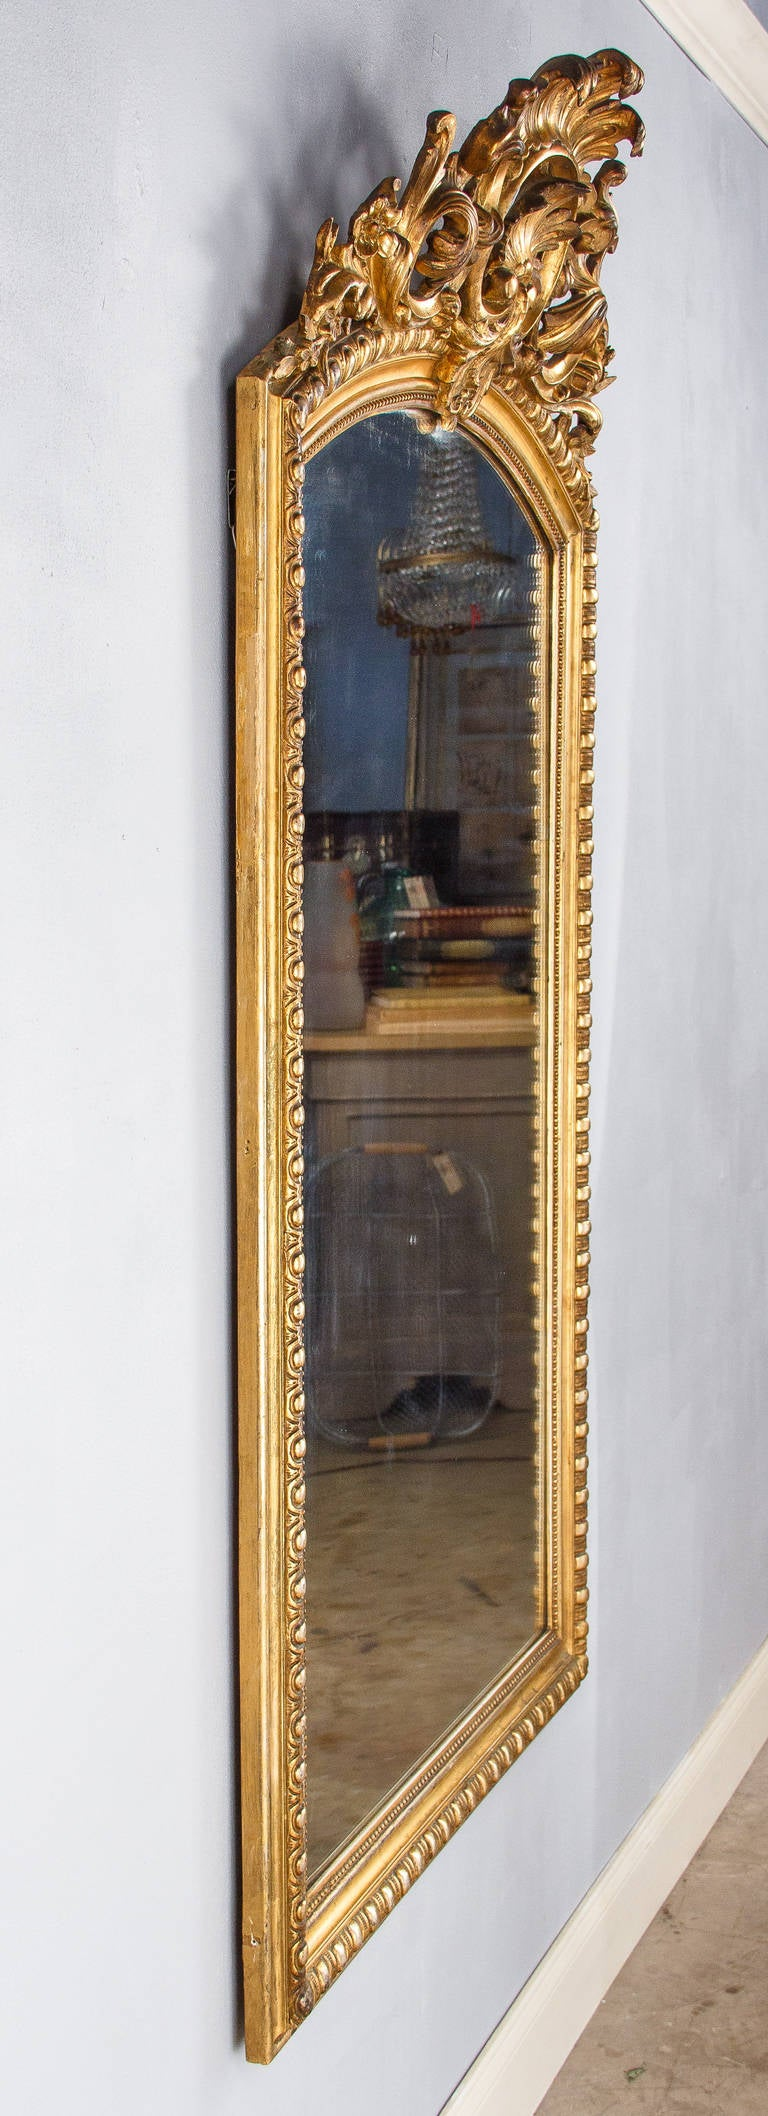 Stucco French Transition Louis XV to Louis XVI Gilded Mirror, Mid-1800s